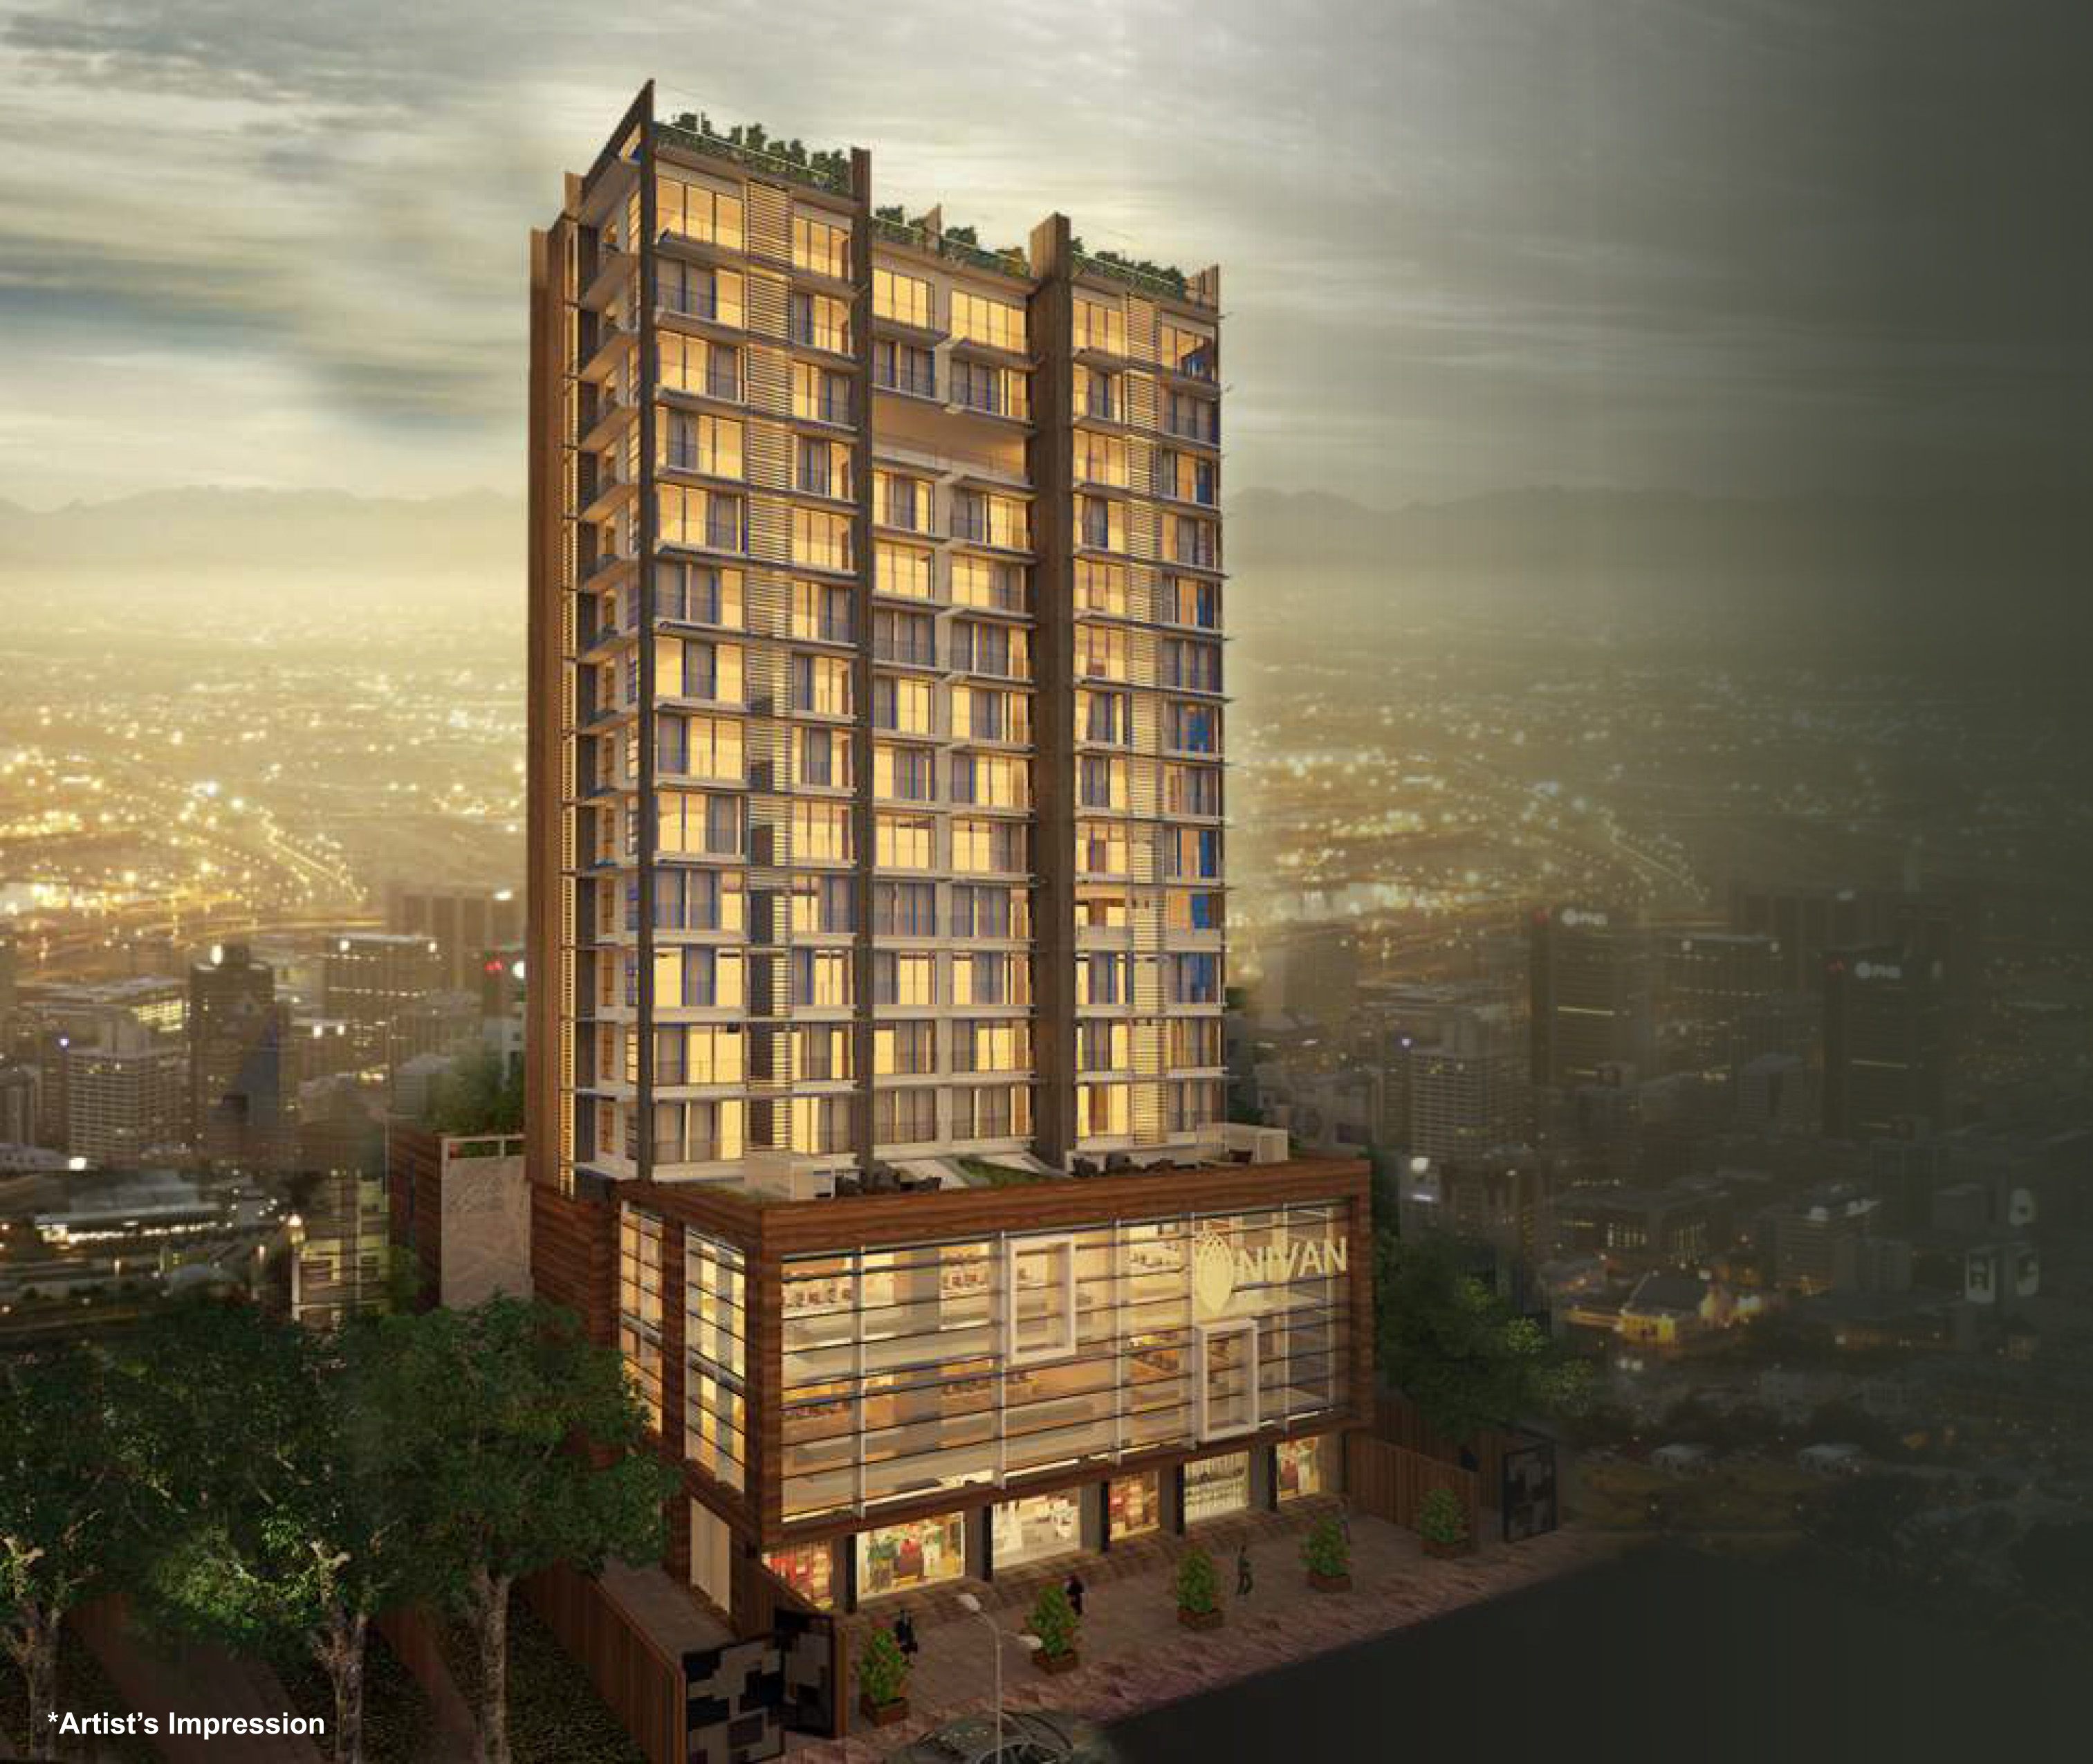 2 Bedroom Luxurious Residences At The Magnificent Nivan